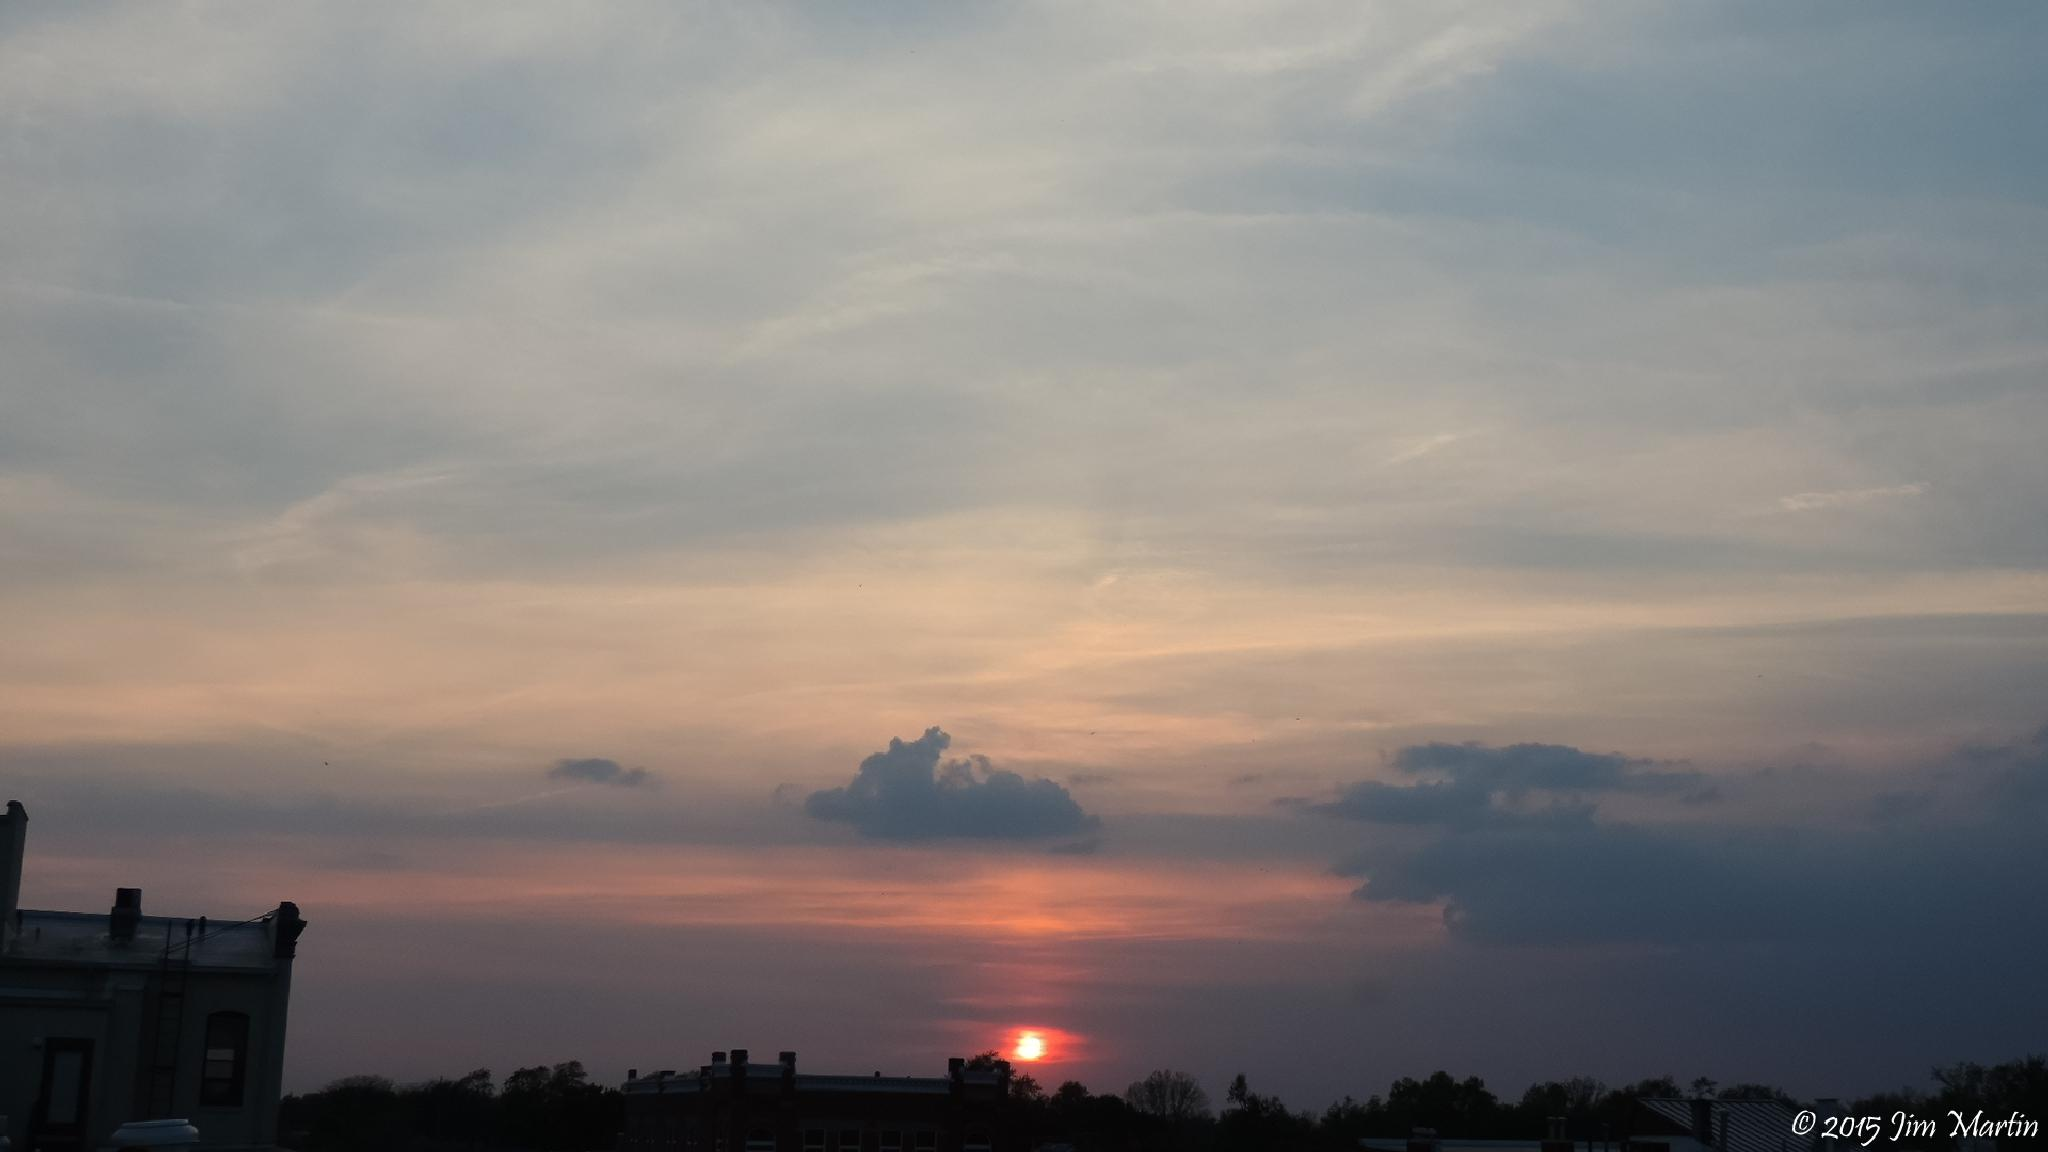 Downtown Findlay Sunset 5/7/2015 by Jim Martin